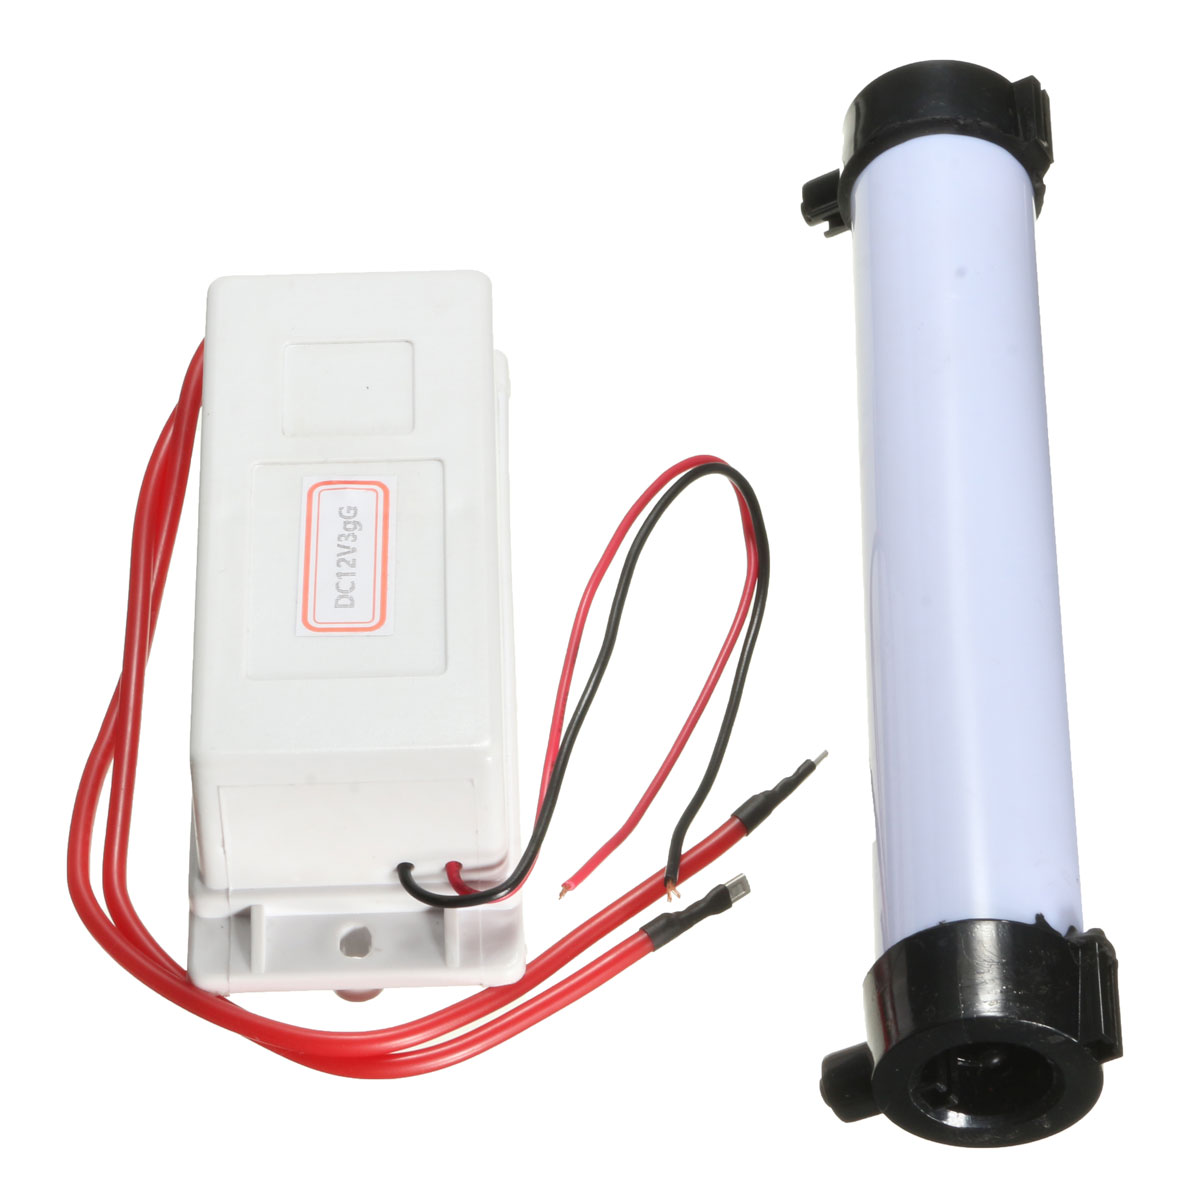 DC12V 3g Ozone Generator Ozone Tube 3g/hr for Water Plant Air Cleaner Drinking